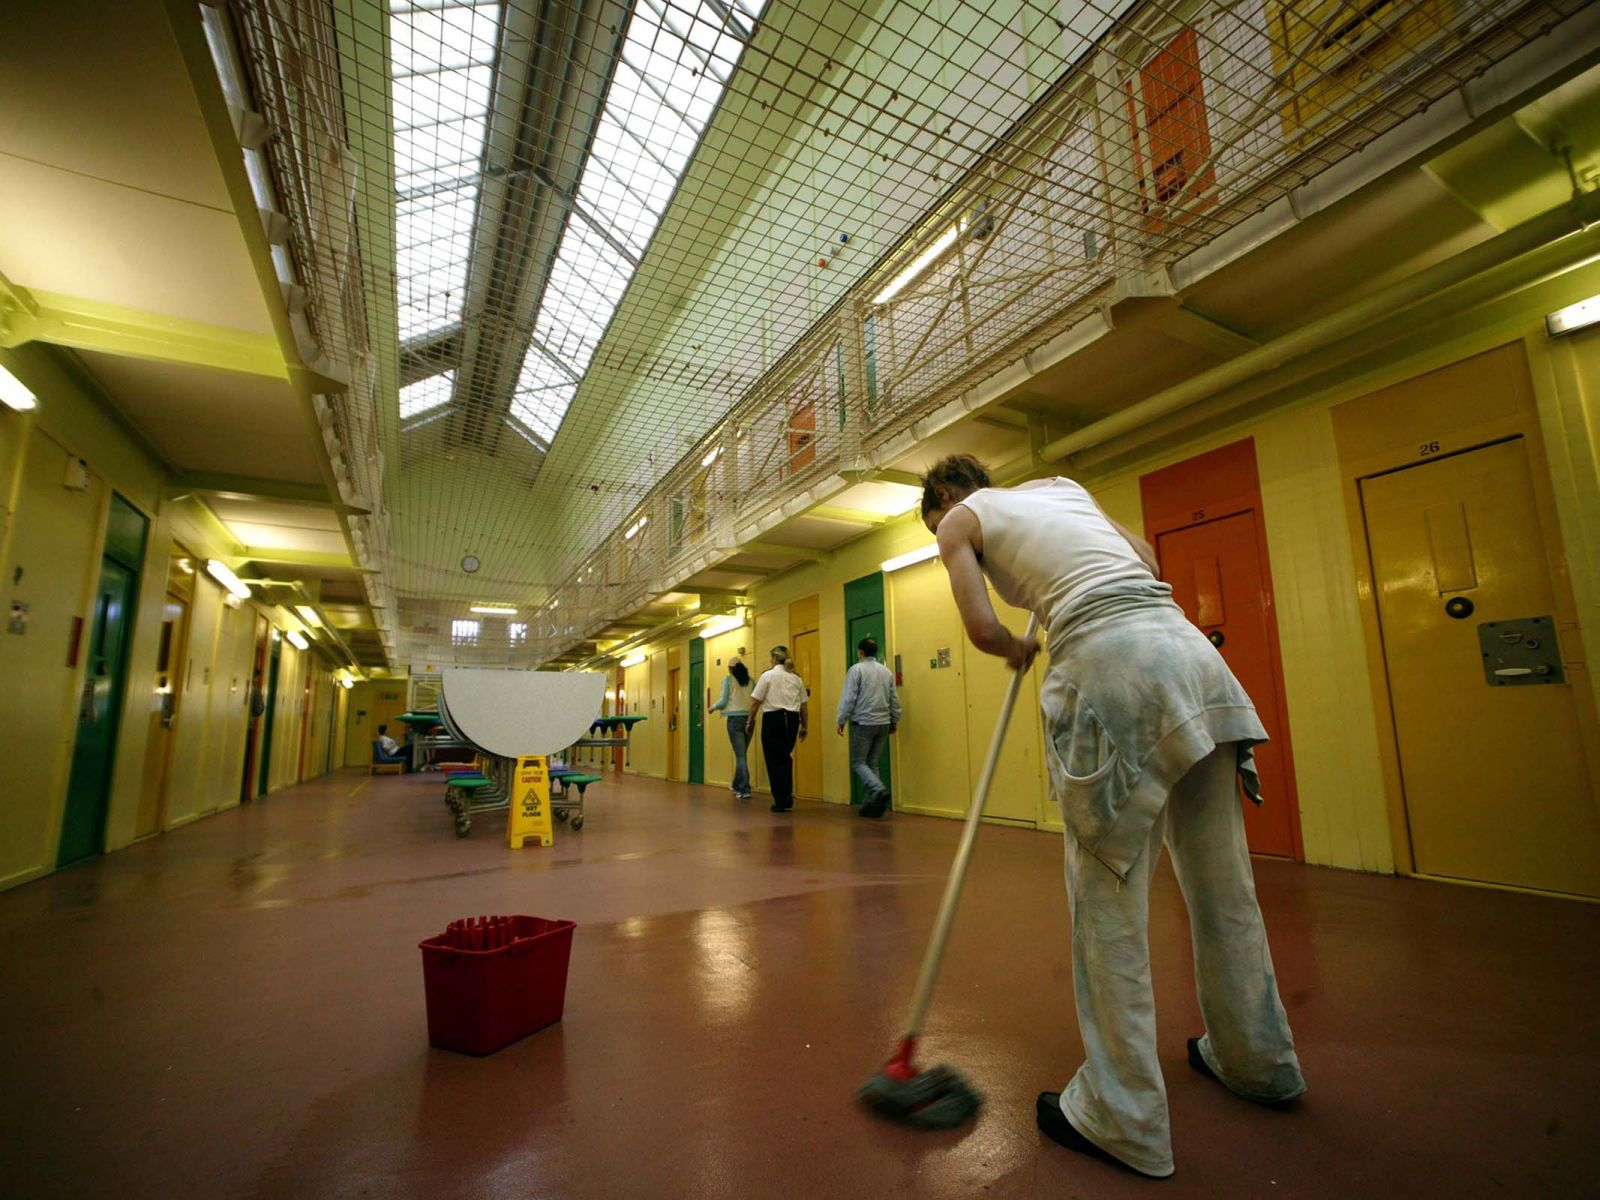 Mopping floors in jail